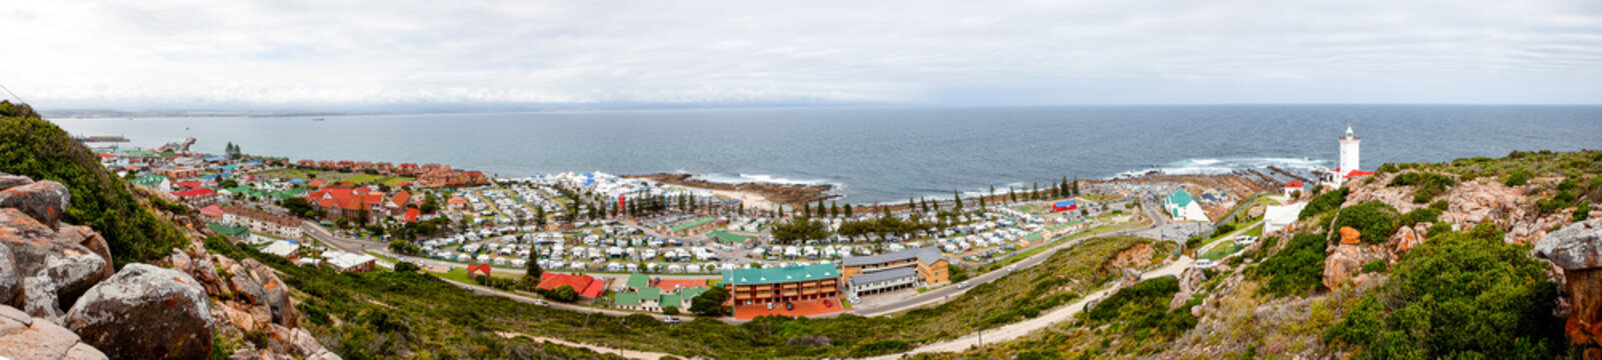 Panoramic view of Mosselbay from the Snt Blaize lighthouse overlooking the Mosselbay bay towards George in the Western Cape of South Africa